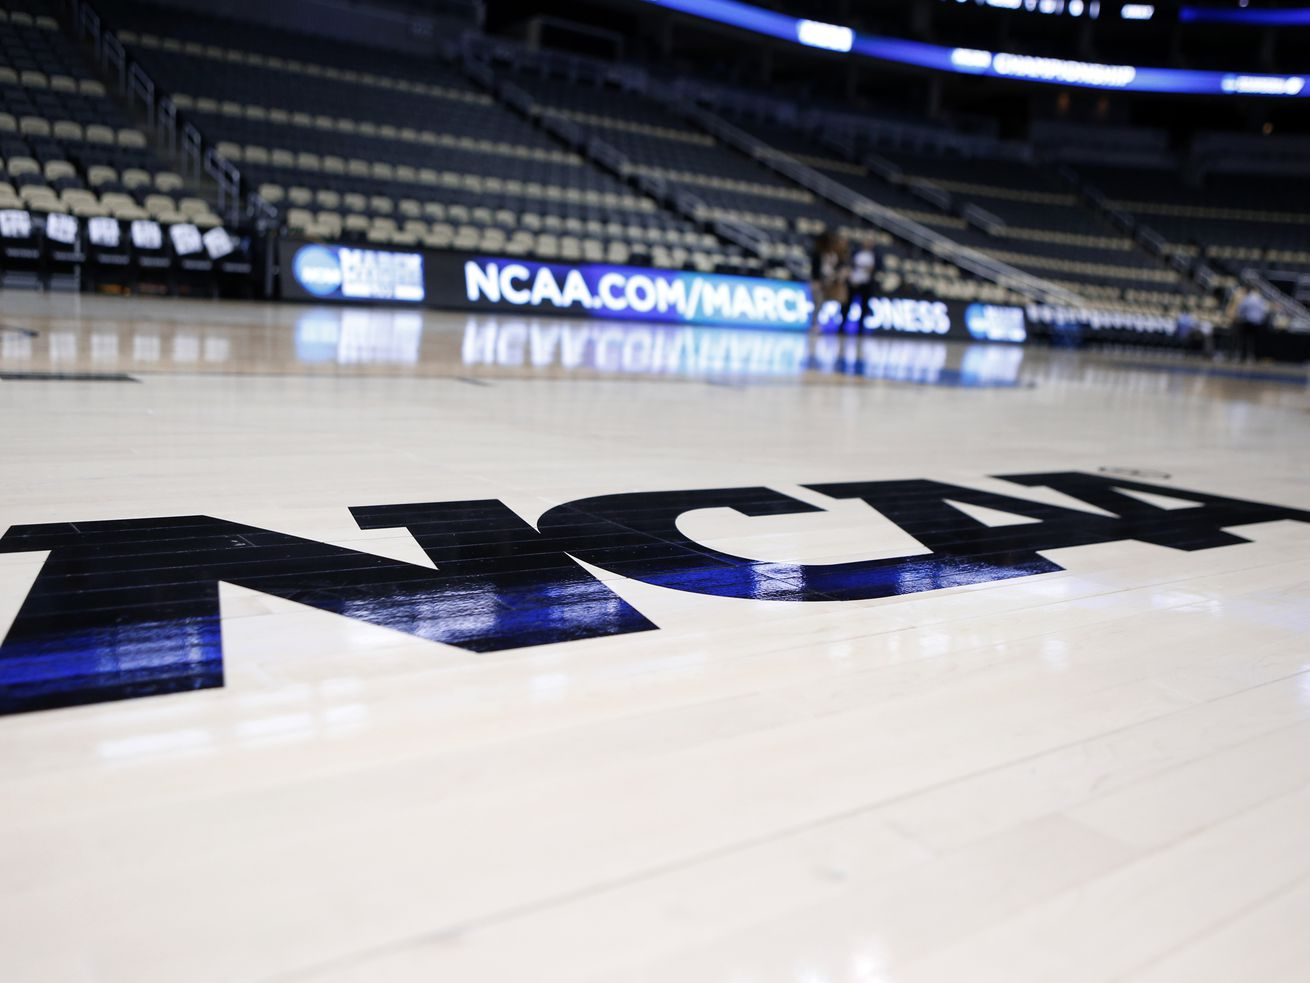 The NCAA announced Monday it plans to hold the entire 2021 men's college basketball tournament in one geographic location to mitigate the risks of COVID-19.